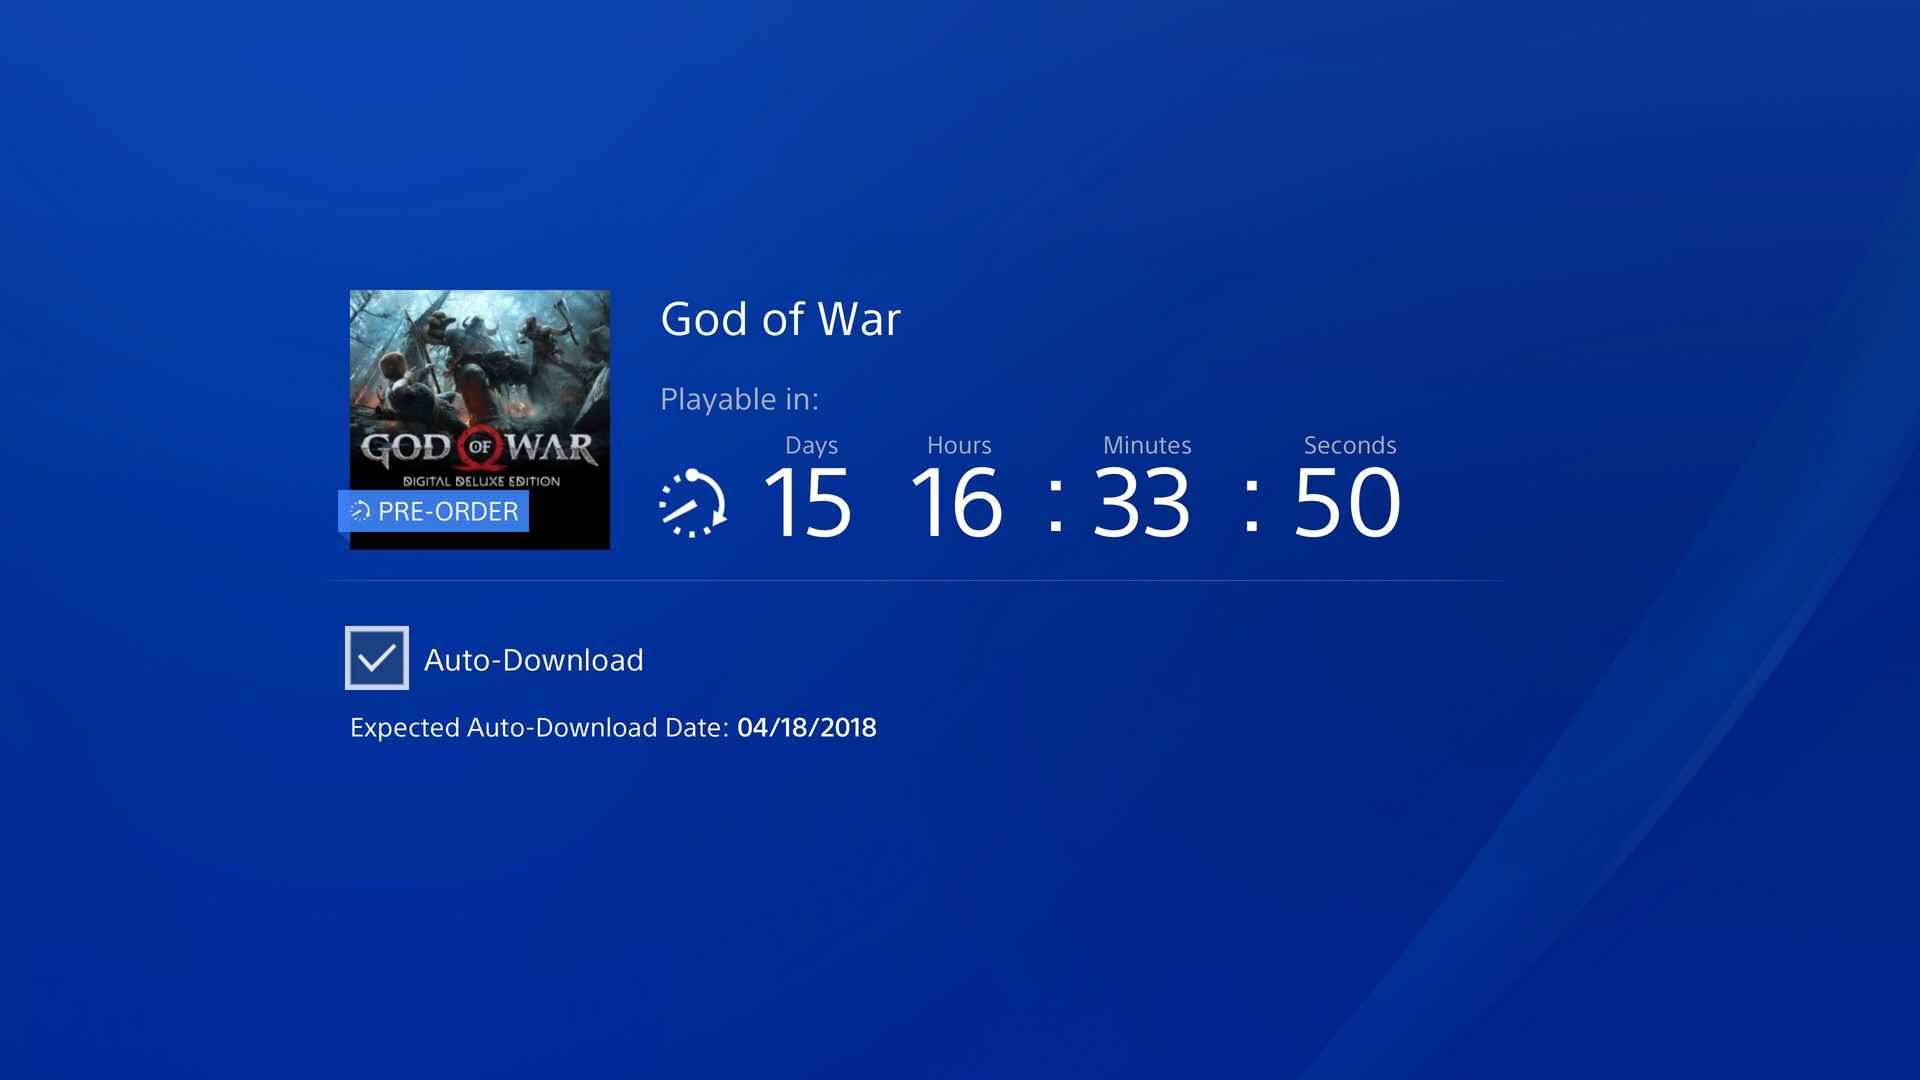 ps4 auto download not working